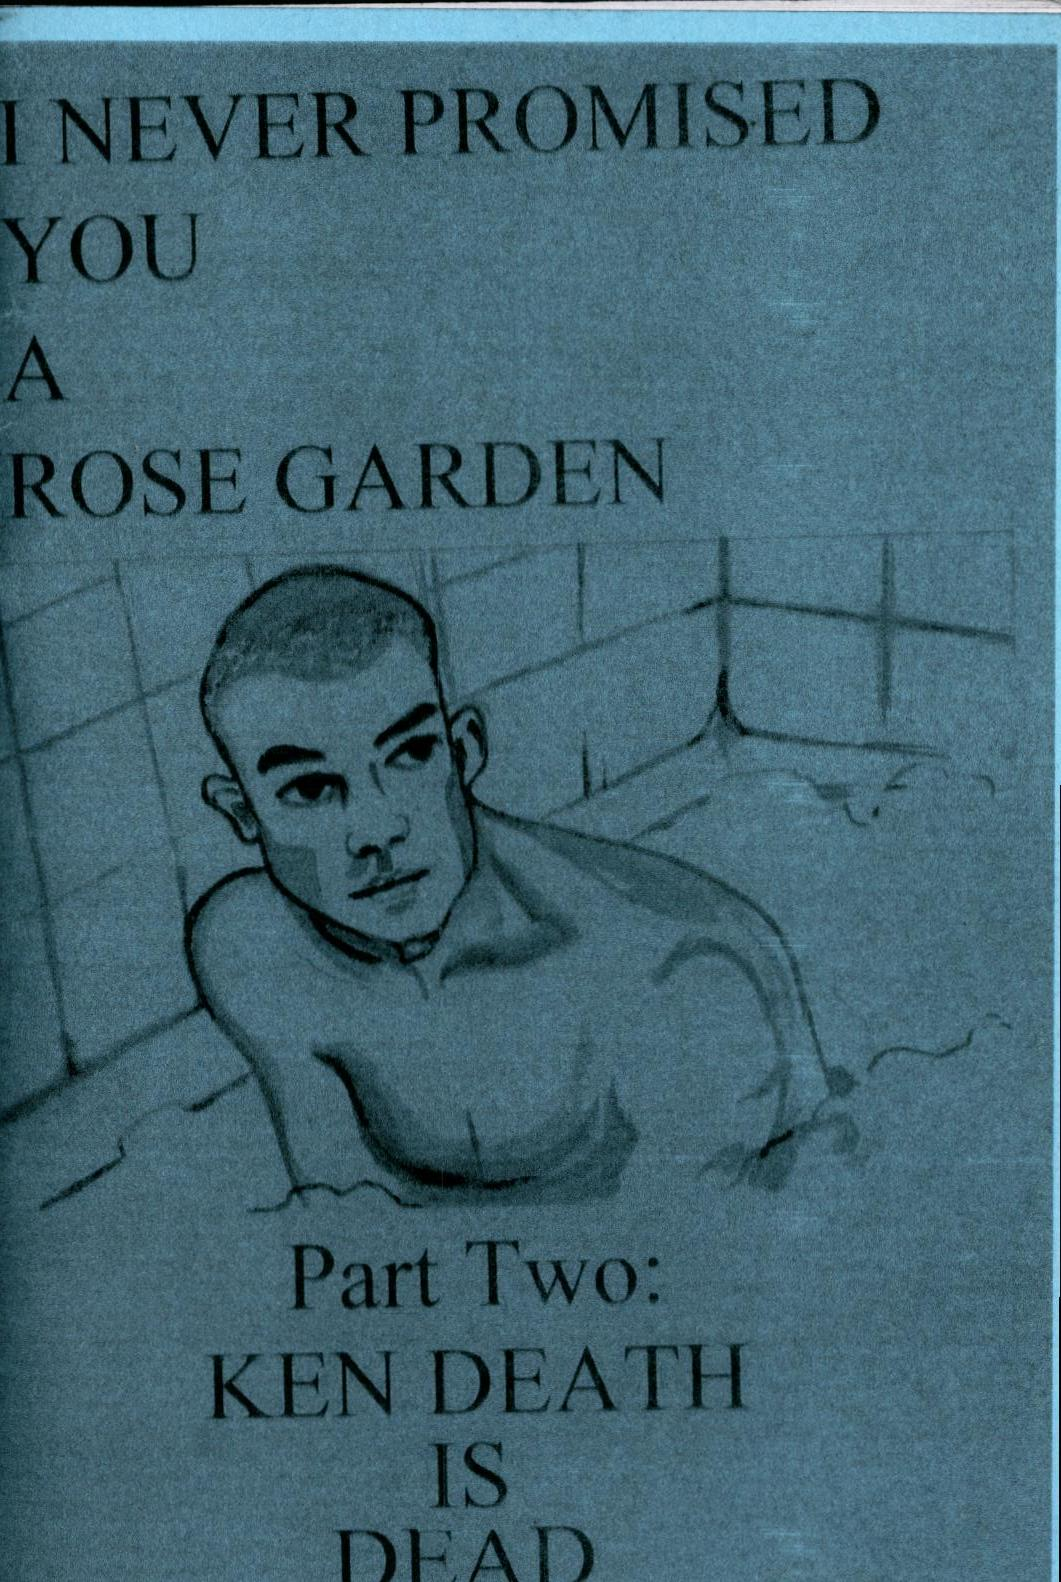 I Never Promised You A Rose Garden 2 By Annie Murphy 5 40 Pages Black And White Digest Size